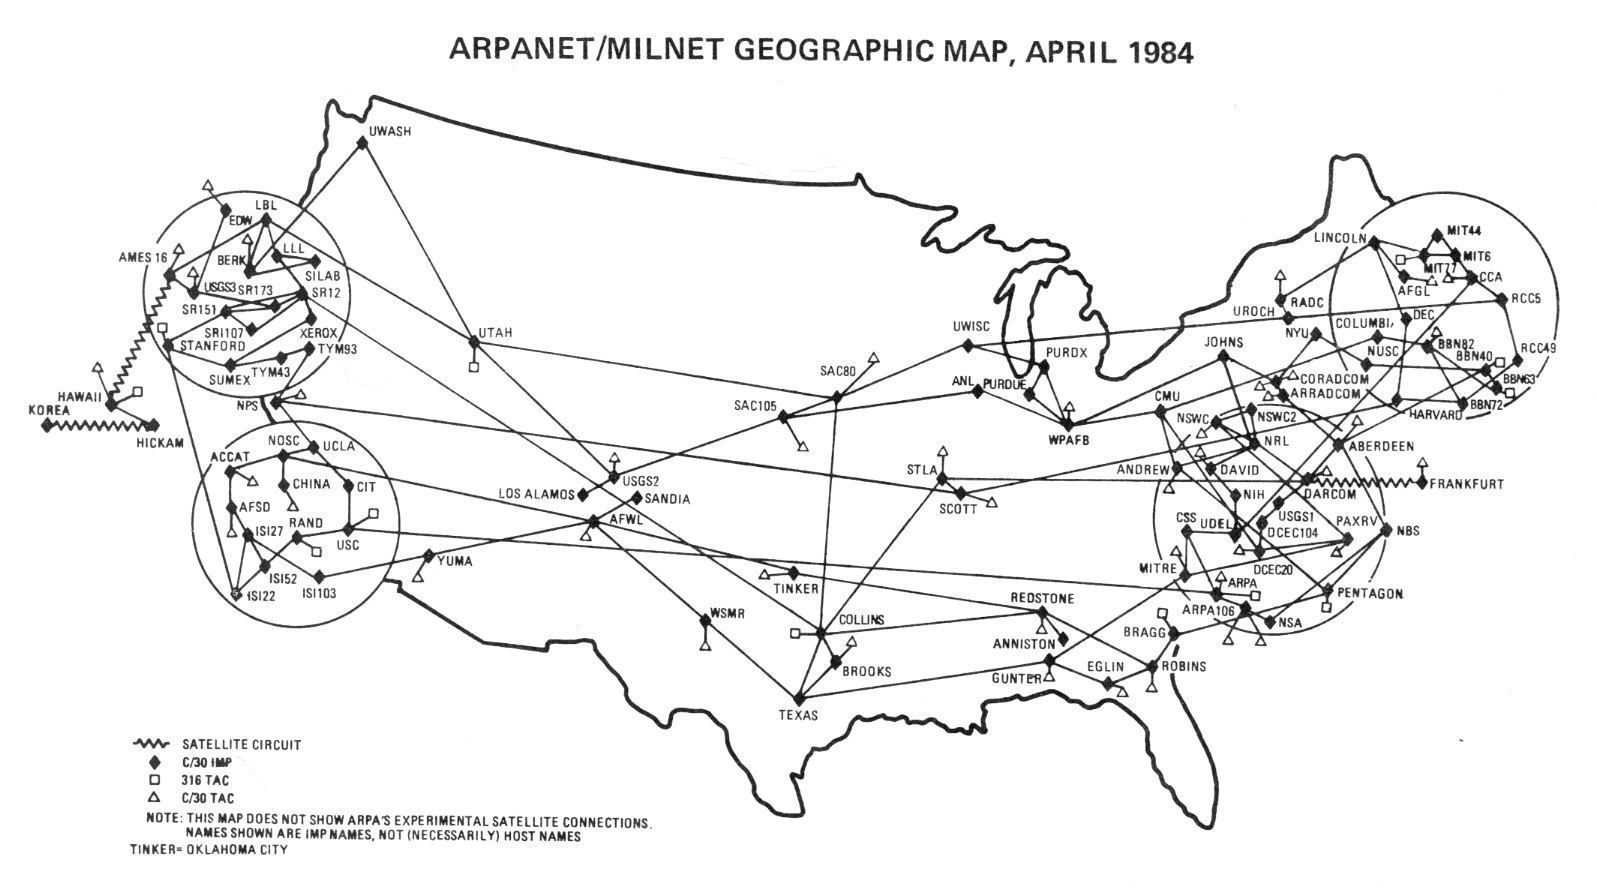 Carte géographique d'ARPANET/MILNET en Avril 1984